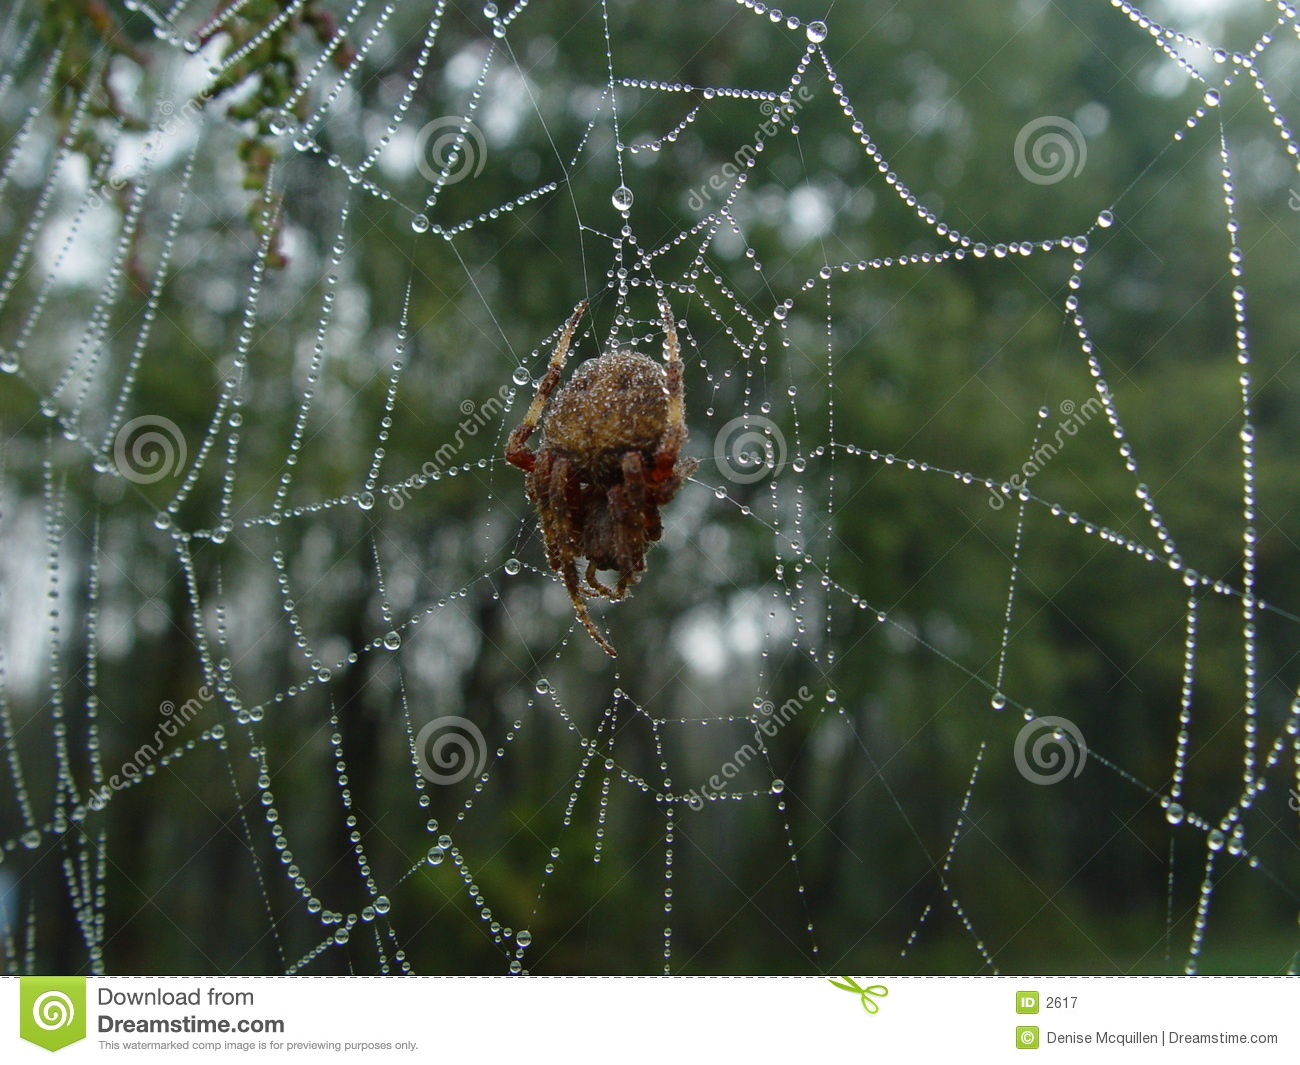 Spinne in befeuchtetem Web